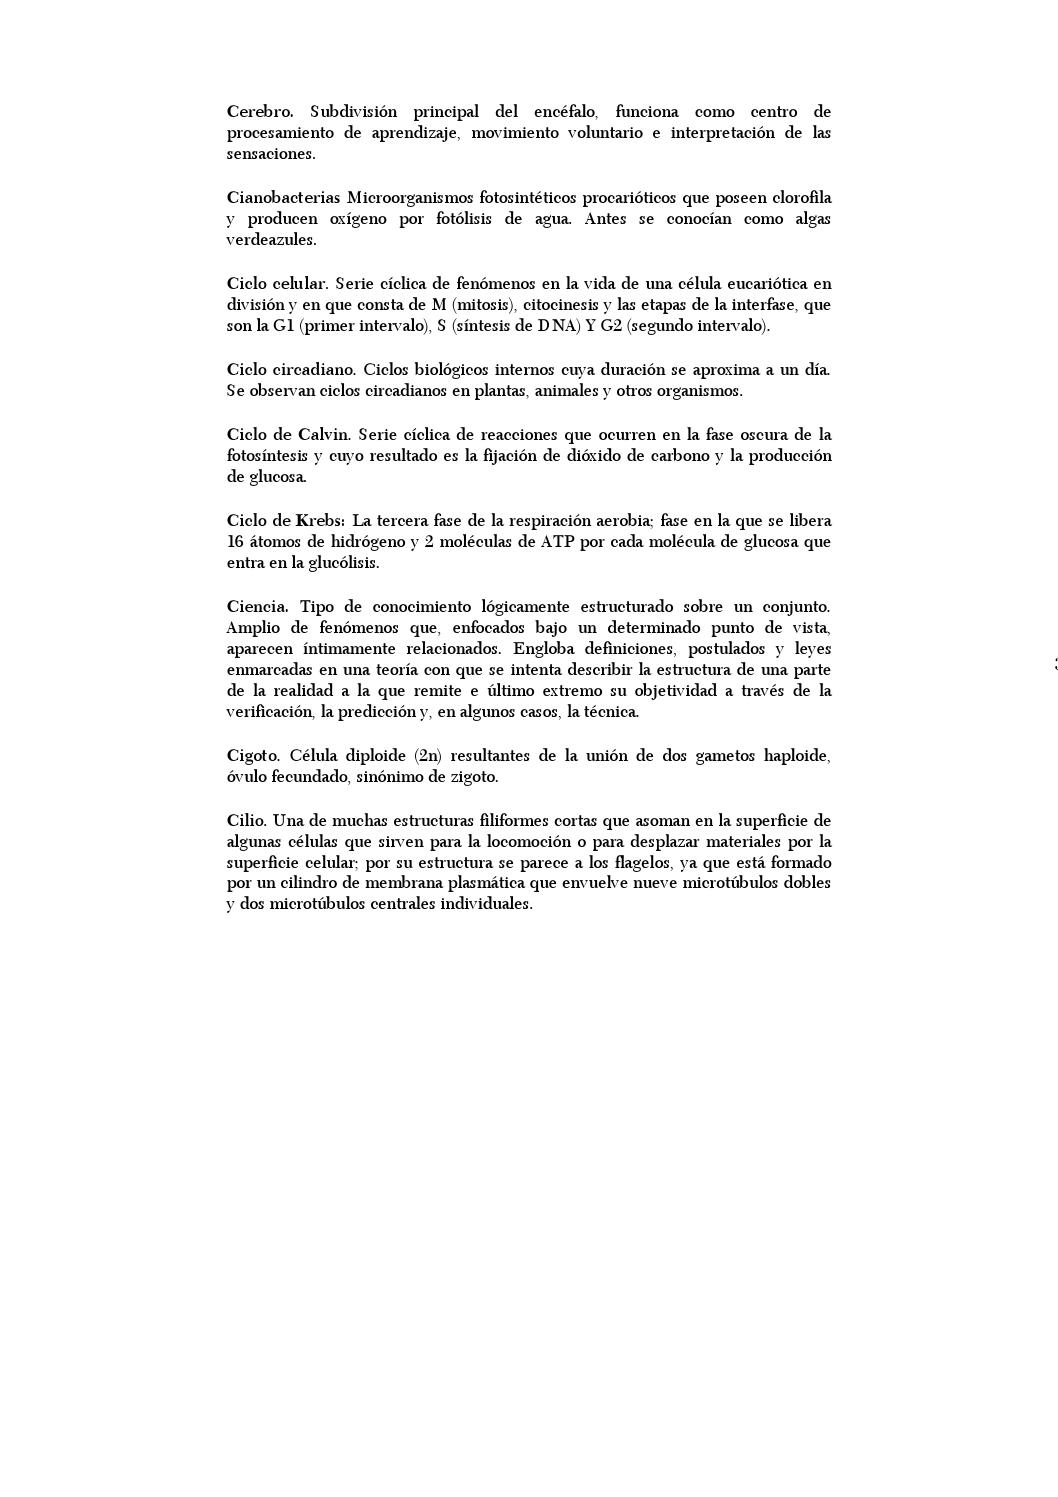 Biologia 1 By Club De Matemáticas Y Ciencias Issuu